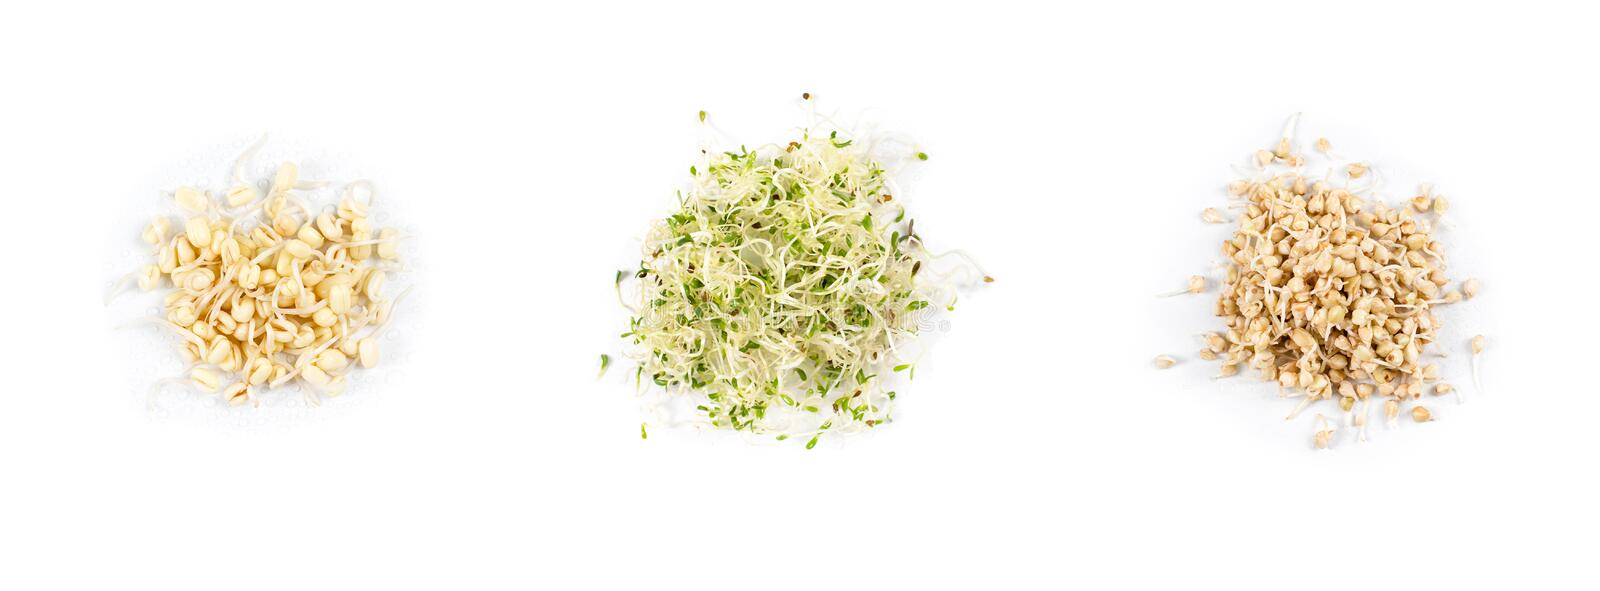 Heap of pea sprouts, sprouted alfalfa seeds and germinated buckwheat, micro greens on white background. Symbol of health royalty free stock photo